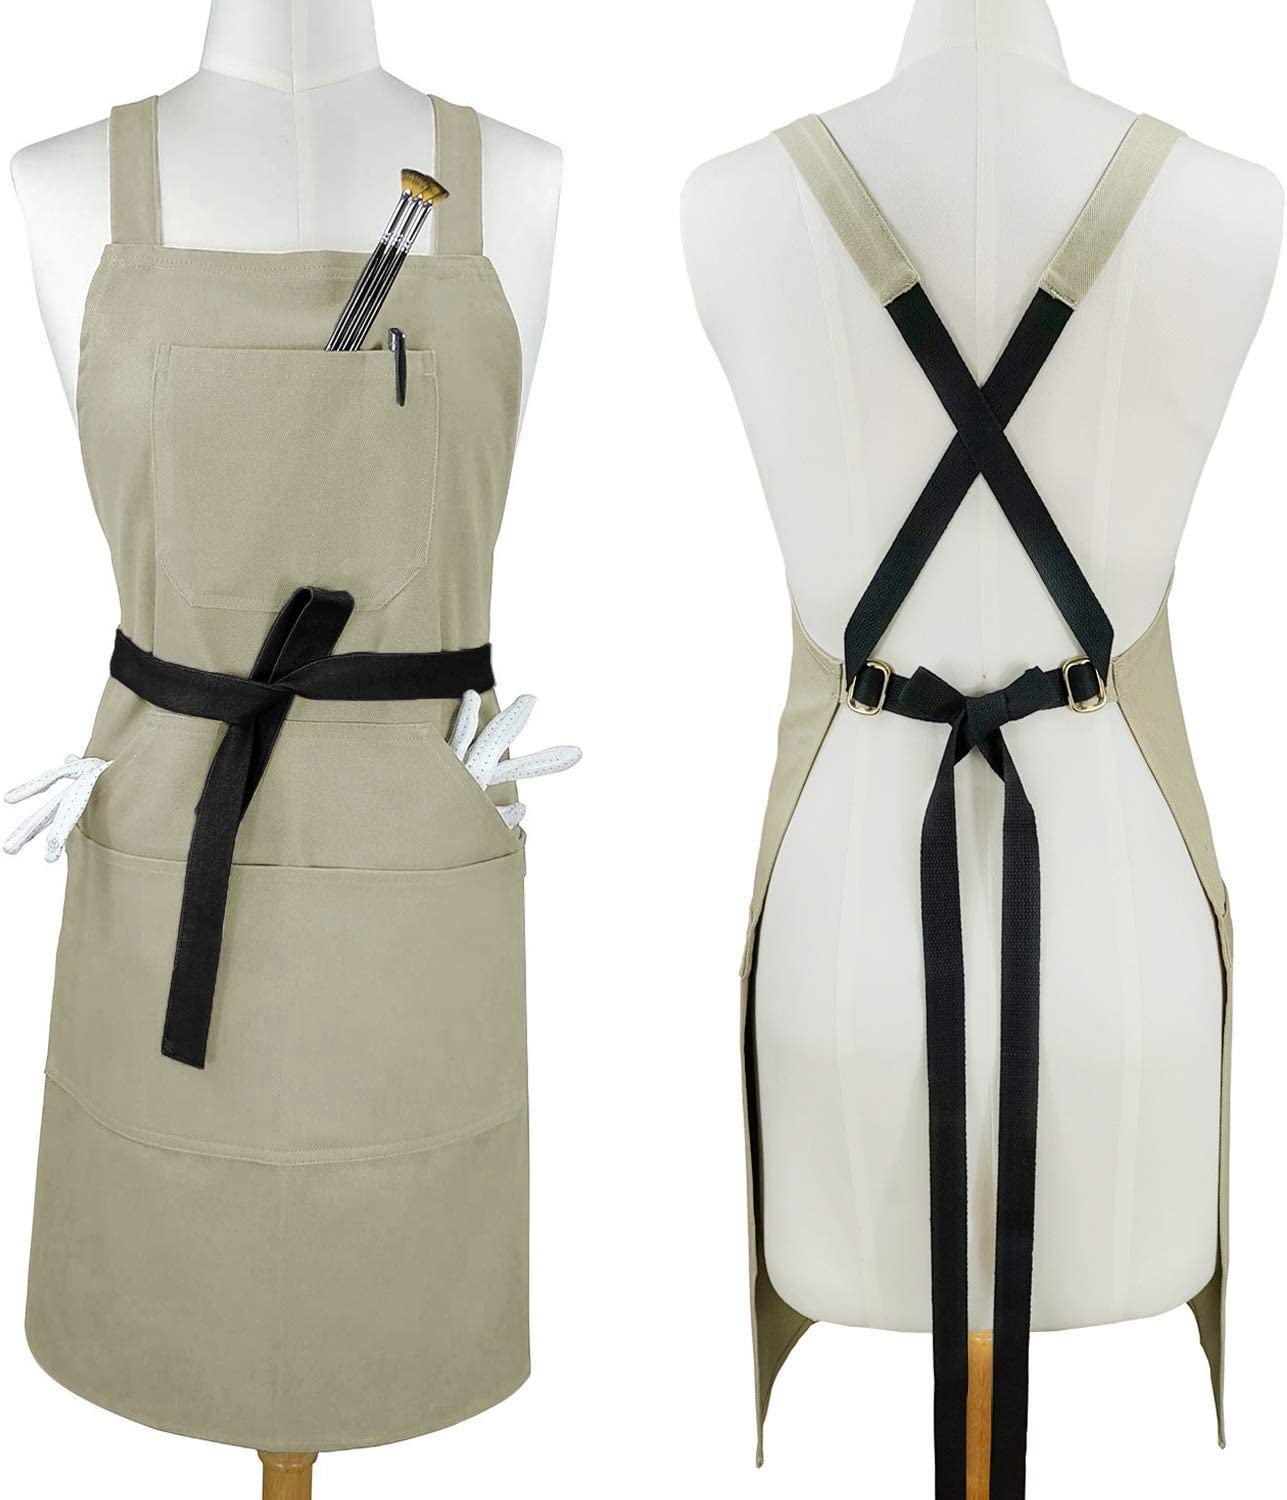 Sturdy Thick Professional Artist Apron, Cross Back + Fasten/Quick Release Buckle + 6 Pockets with 1 Zipper Pocket + 2 Towel Loops For Artist Kitchen, Adjustable M to XXL, 27